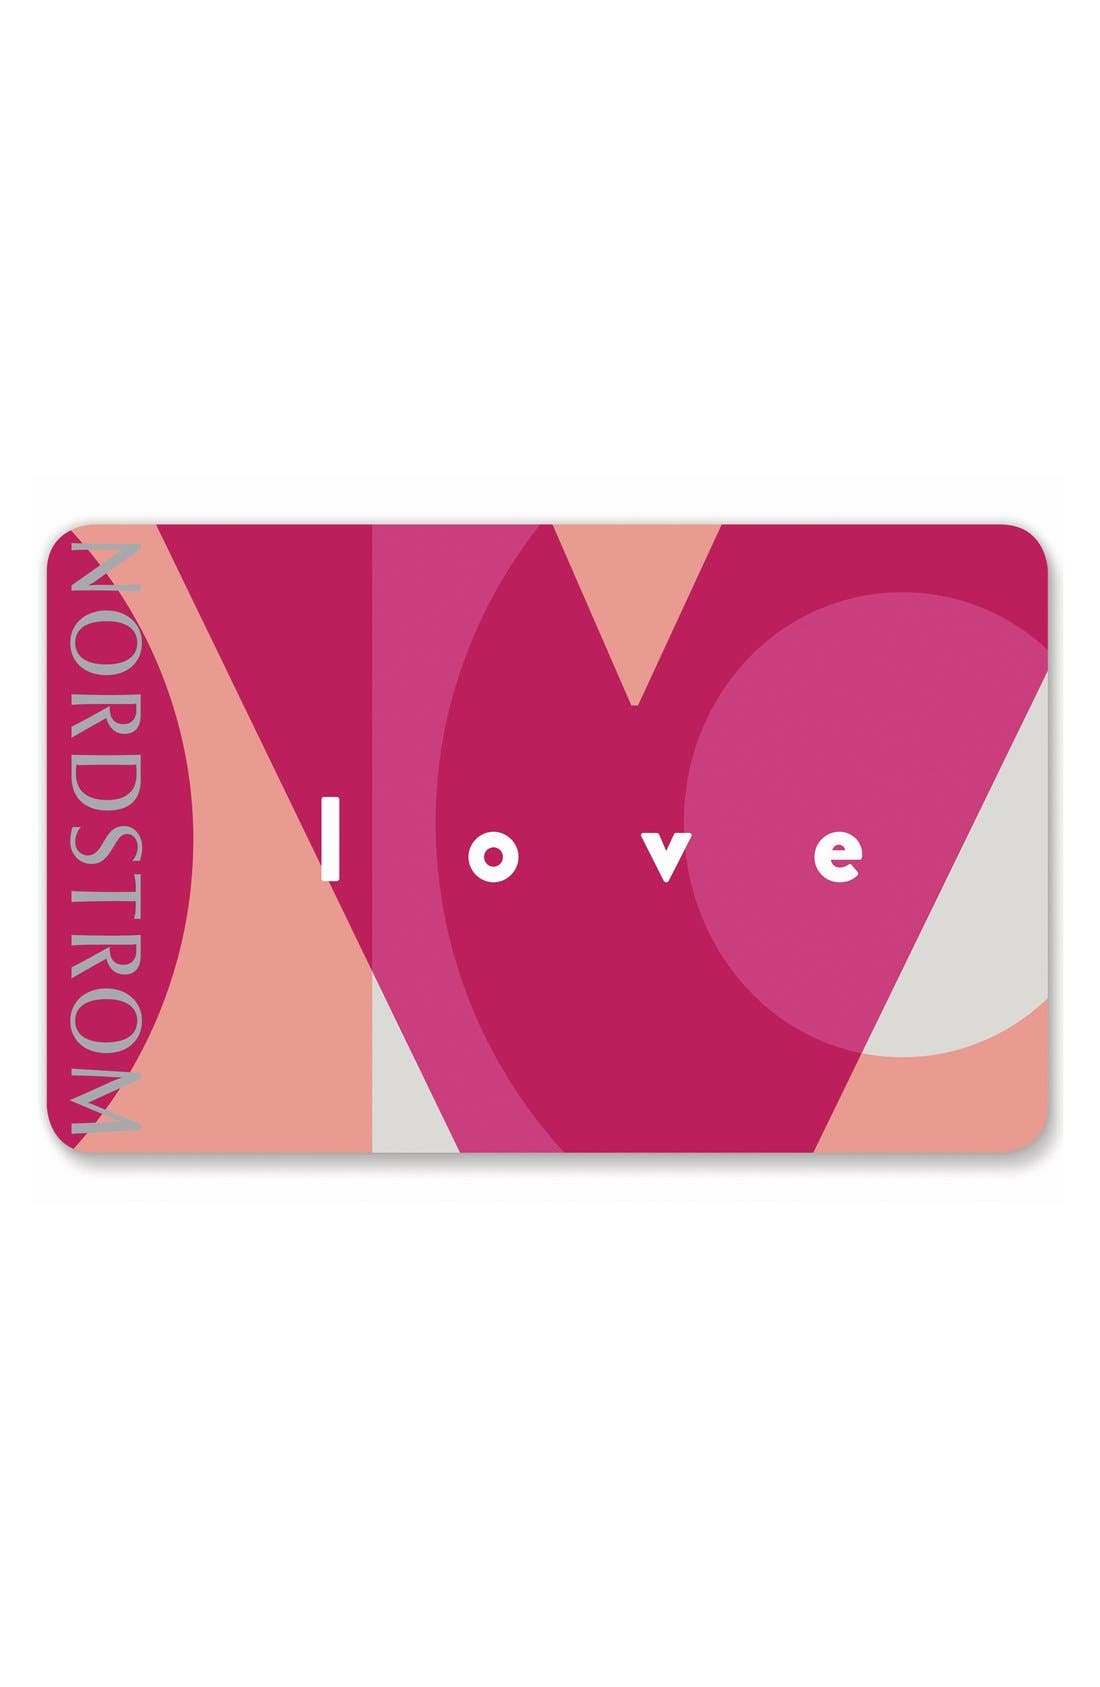 cute valentine's day gifts & ideas for him & her | nordstrom, Ideas